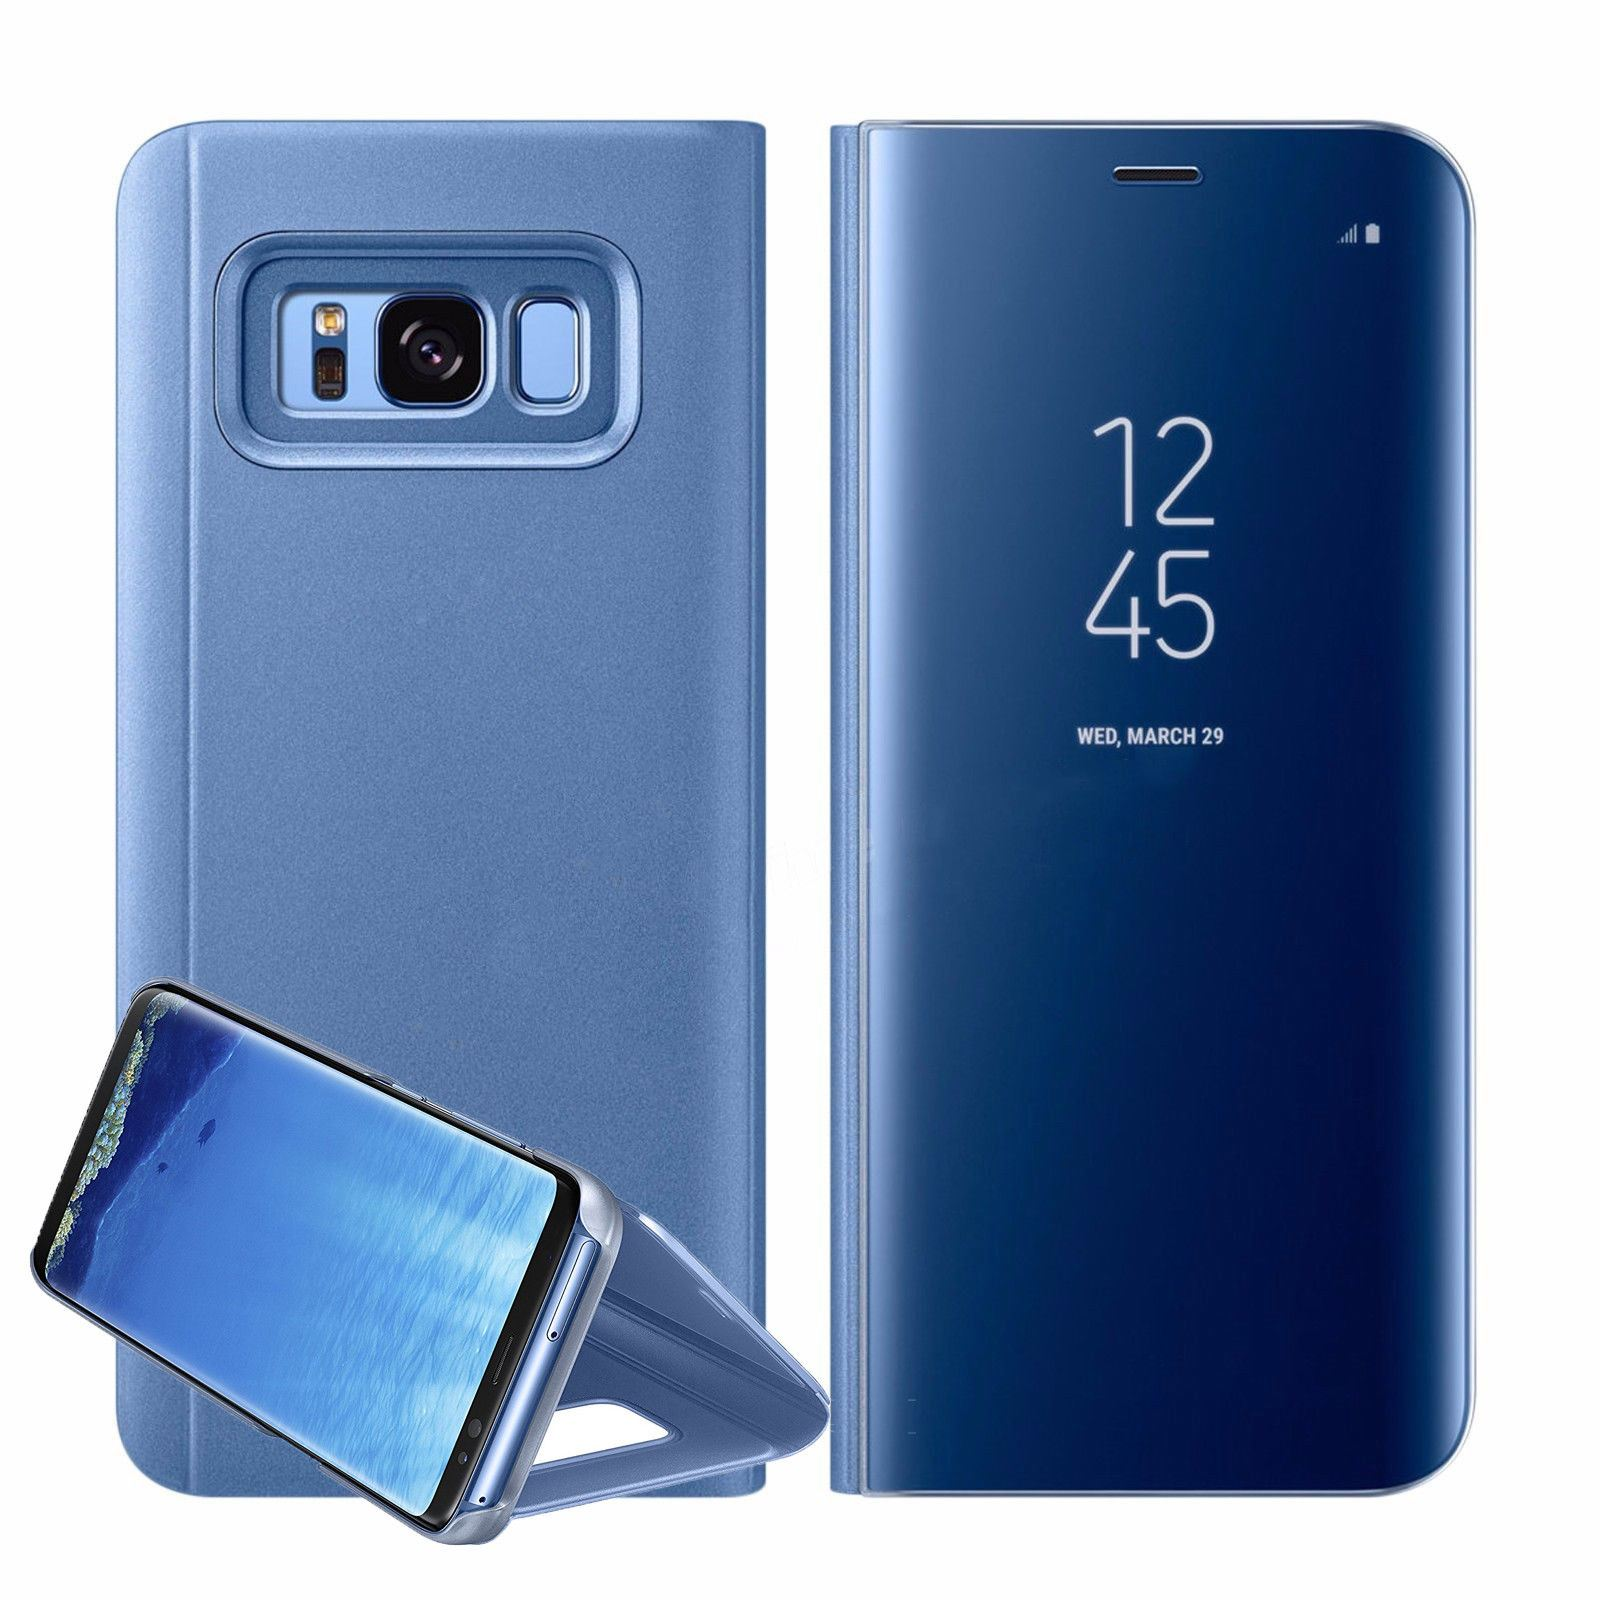 New-Samsung-Galaxy-S8-S9-S10-Smart-View-Mirror-Leather-Flip-Stand-Case-Cover miniatura 36